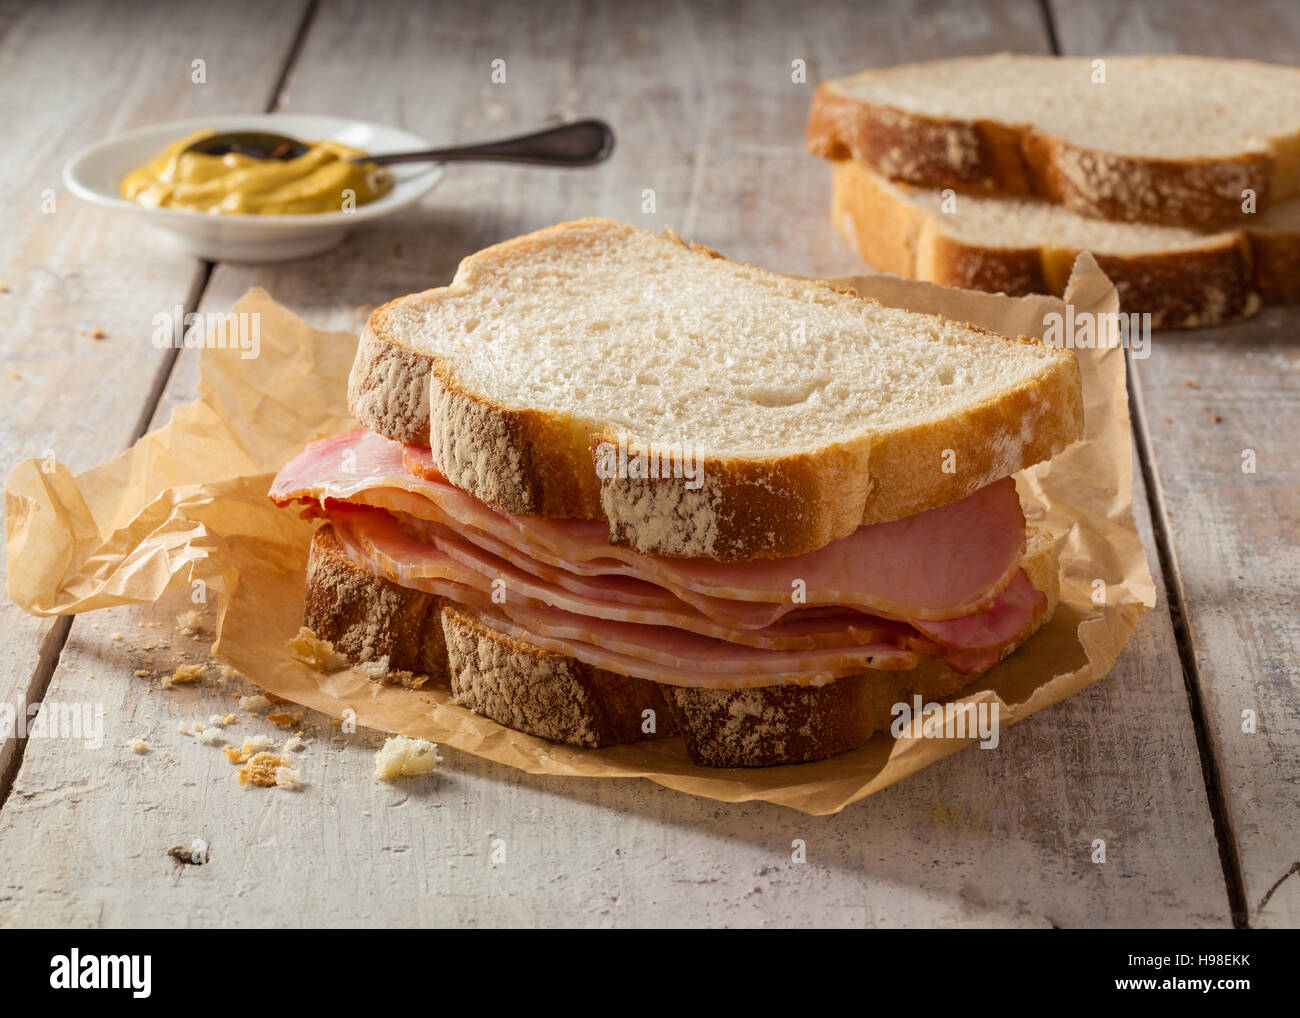 A smoked meat sandwich on a wooden table with mustard. - Stock Image